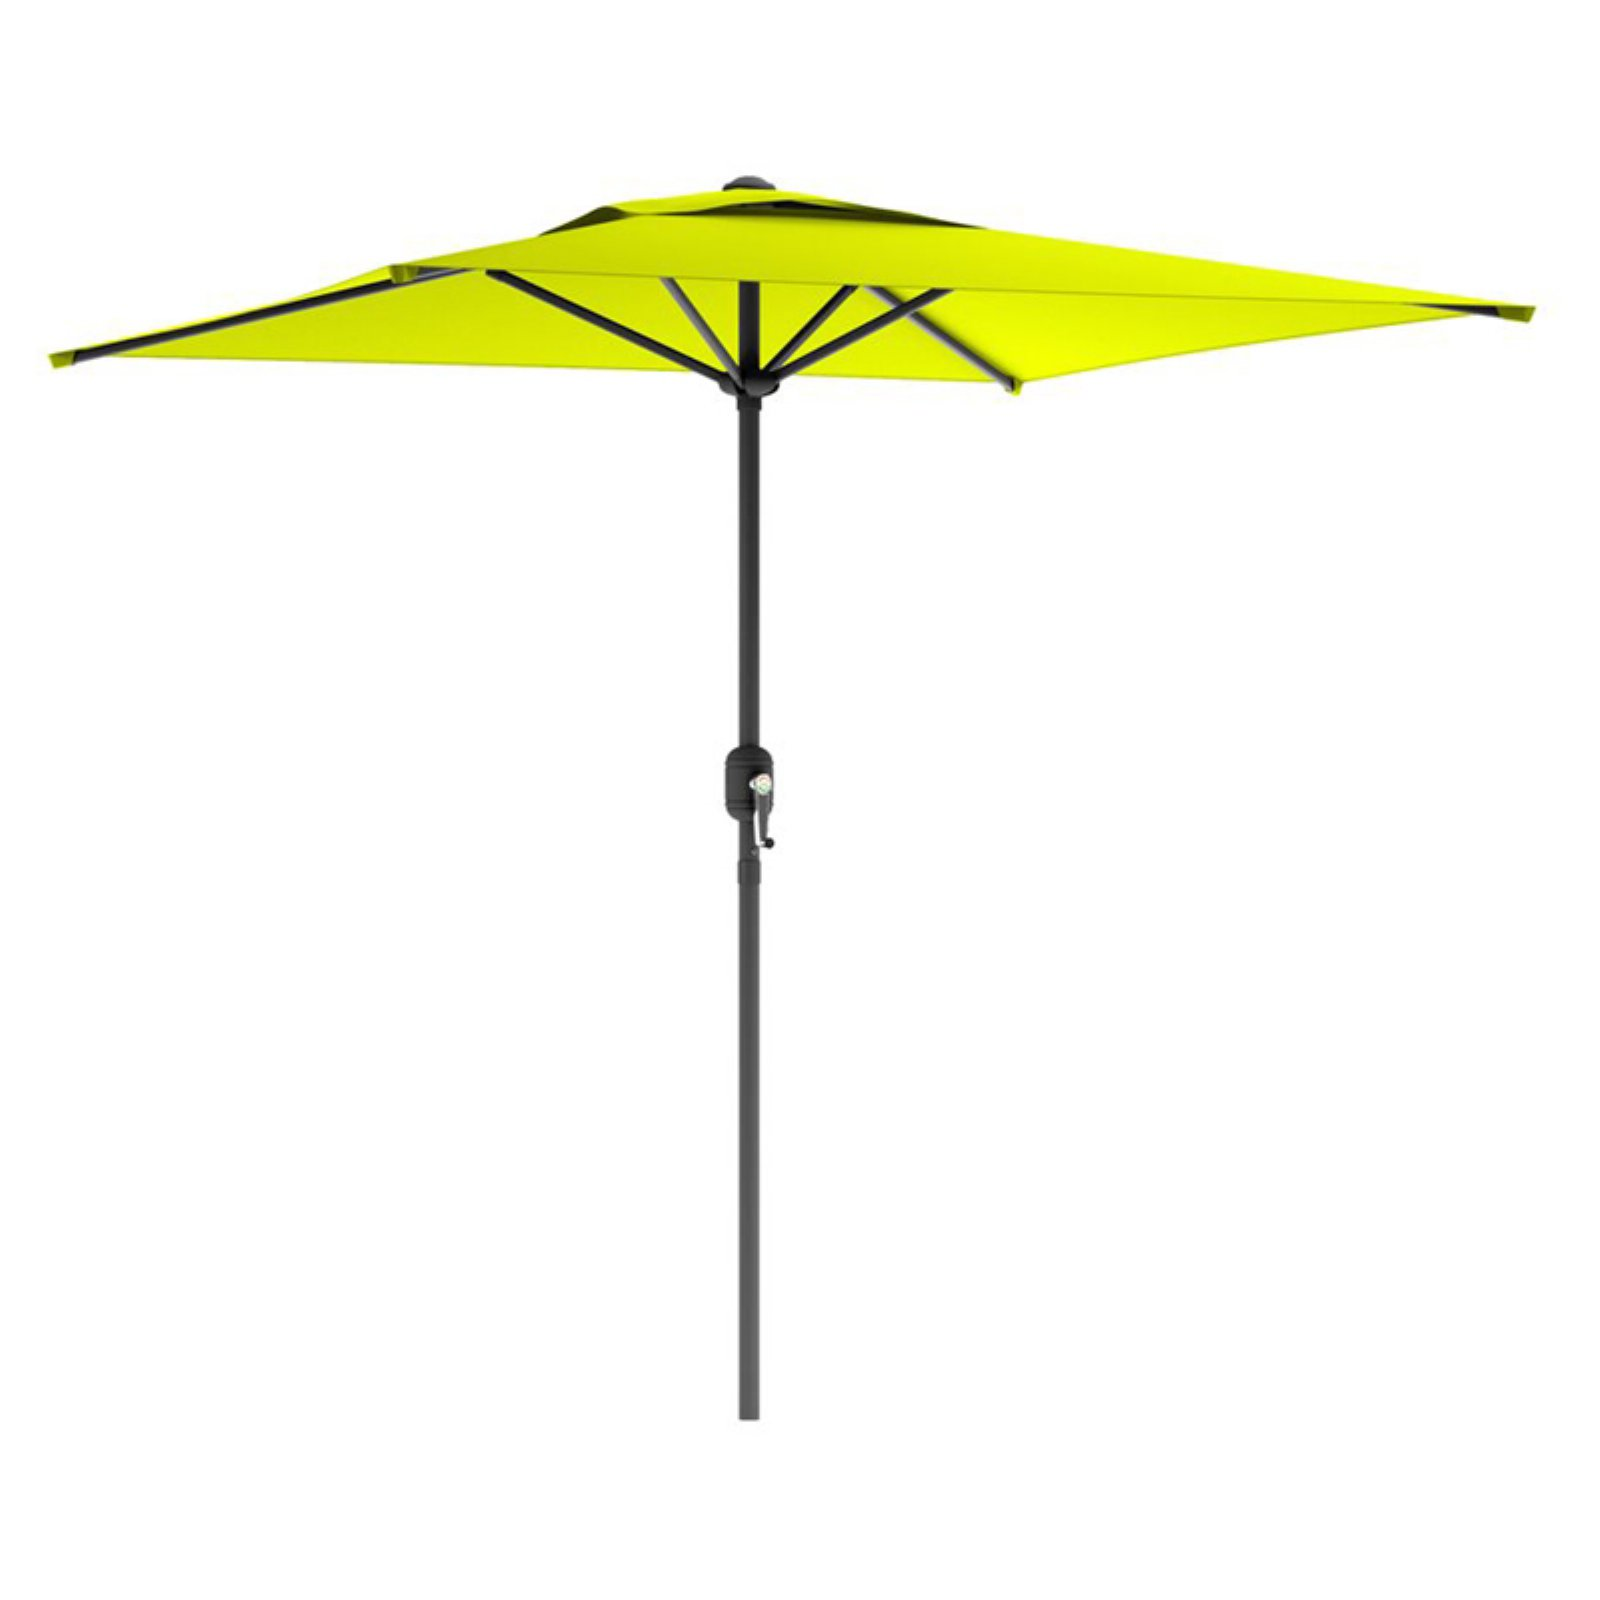 CorLiving Square Patio Umbrella, Multiple Colors by CorBrands